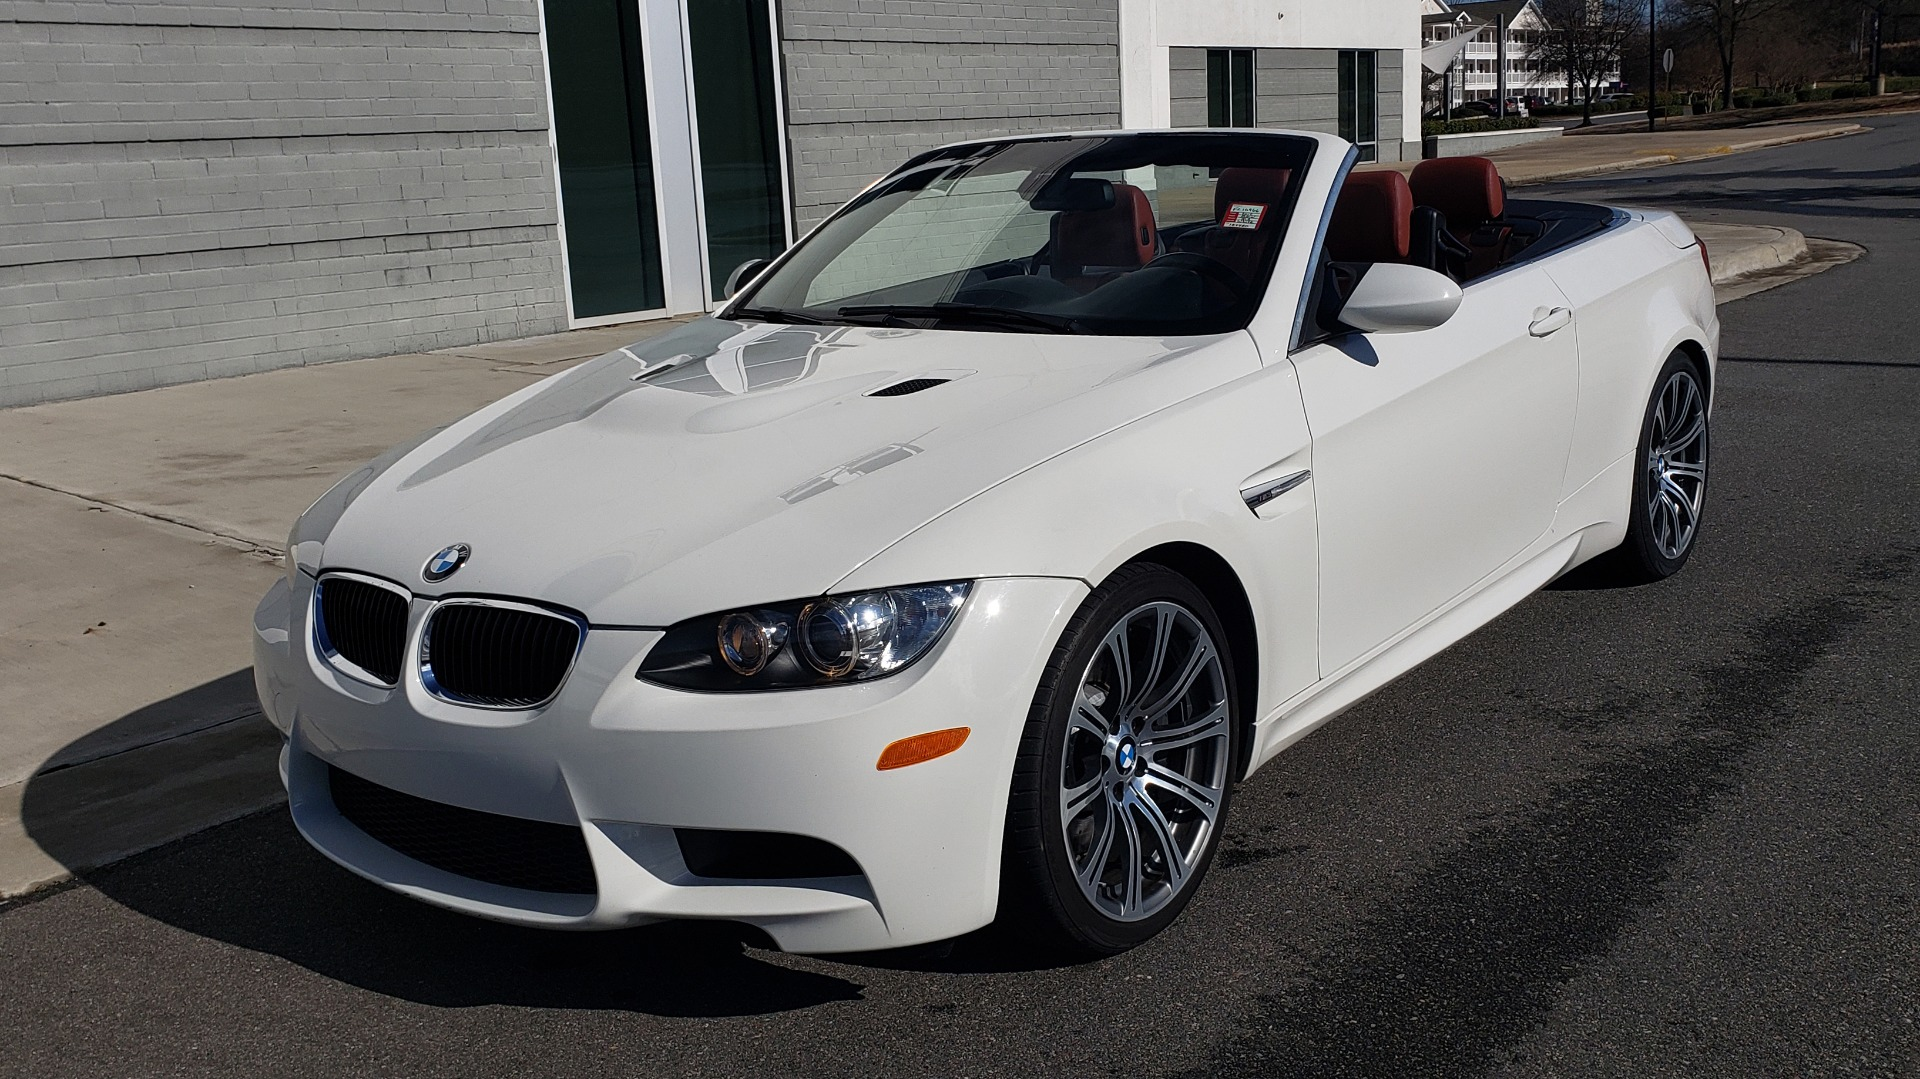 Used 2012 BMW M3 CONVERTIBLE / PREM PKG / NAV / M-DOUBLE CLUTCH AUTOMATIC for sale Sold at Formula Imports in Charlotte NC 28227 14